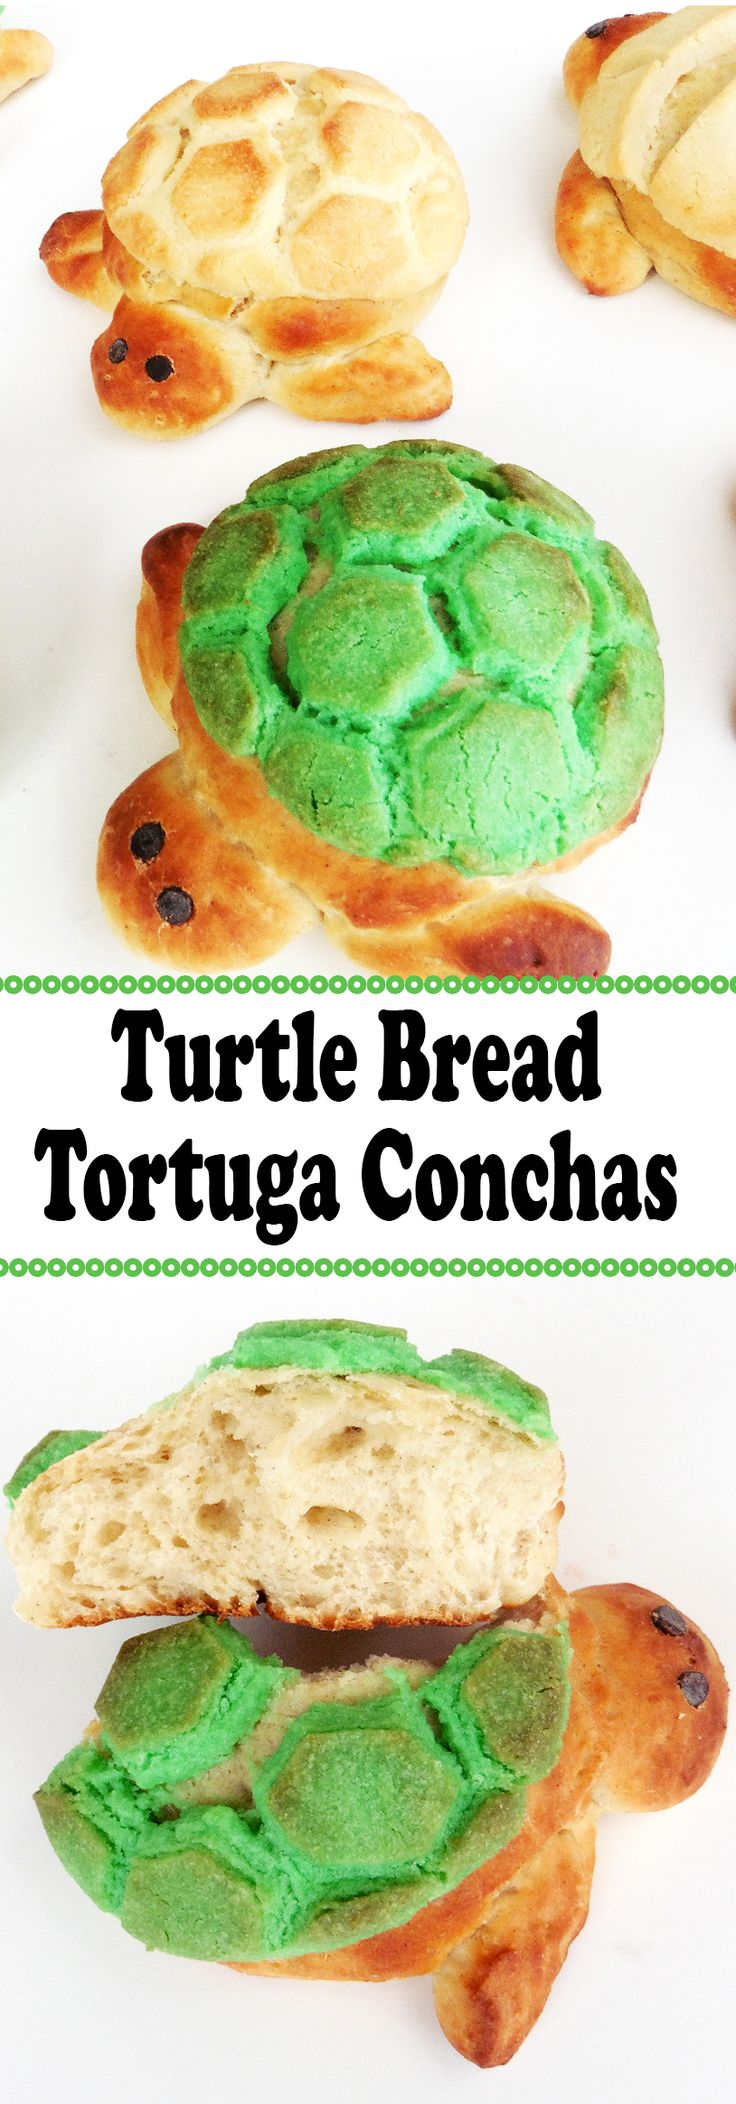 f you've ever set foot in a panaderia (Mexican Bakery) you've surely seen the traditional concha among the wide selection of pastries and sweet treats. The concha is probably the most iconic of all the pan dulces.